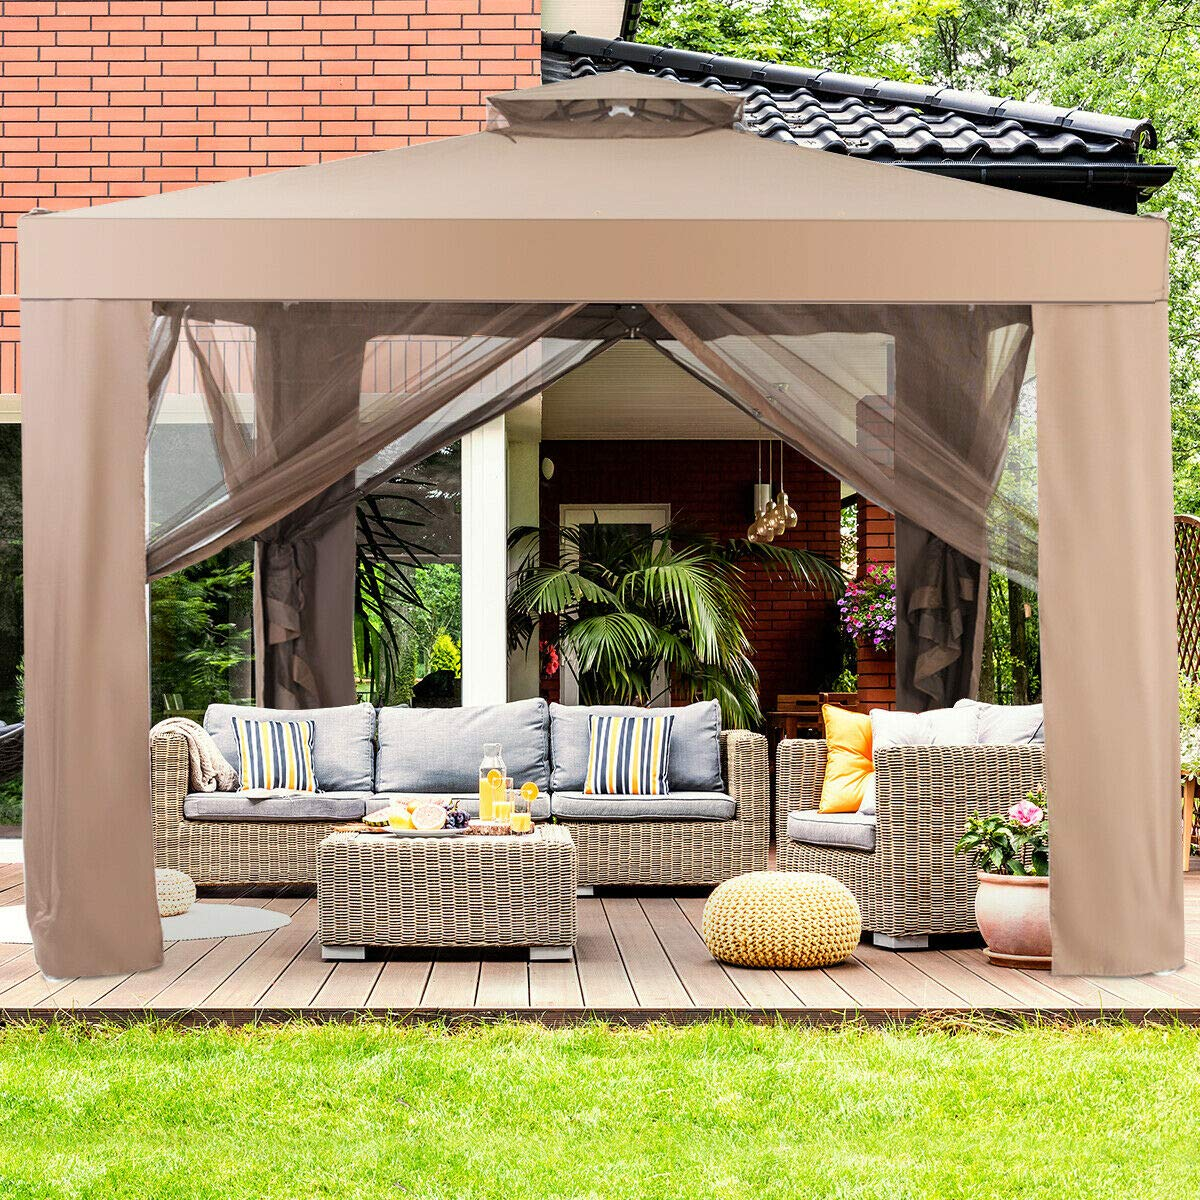 Tangkula 10 x 10 Canopy Gazebo Tent Shelter, Art Steel Frame for Home Garden Lawn Patio House Party, Patio Garden Structures Gazebos W Mosquito Netting Brown